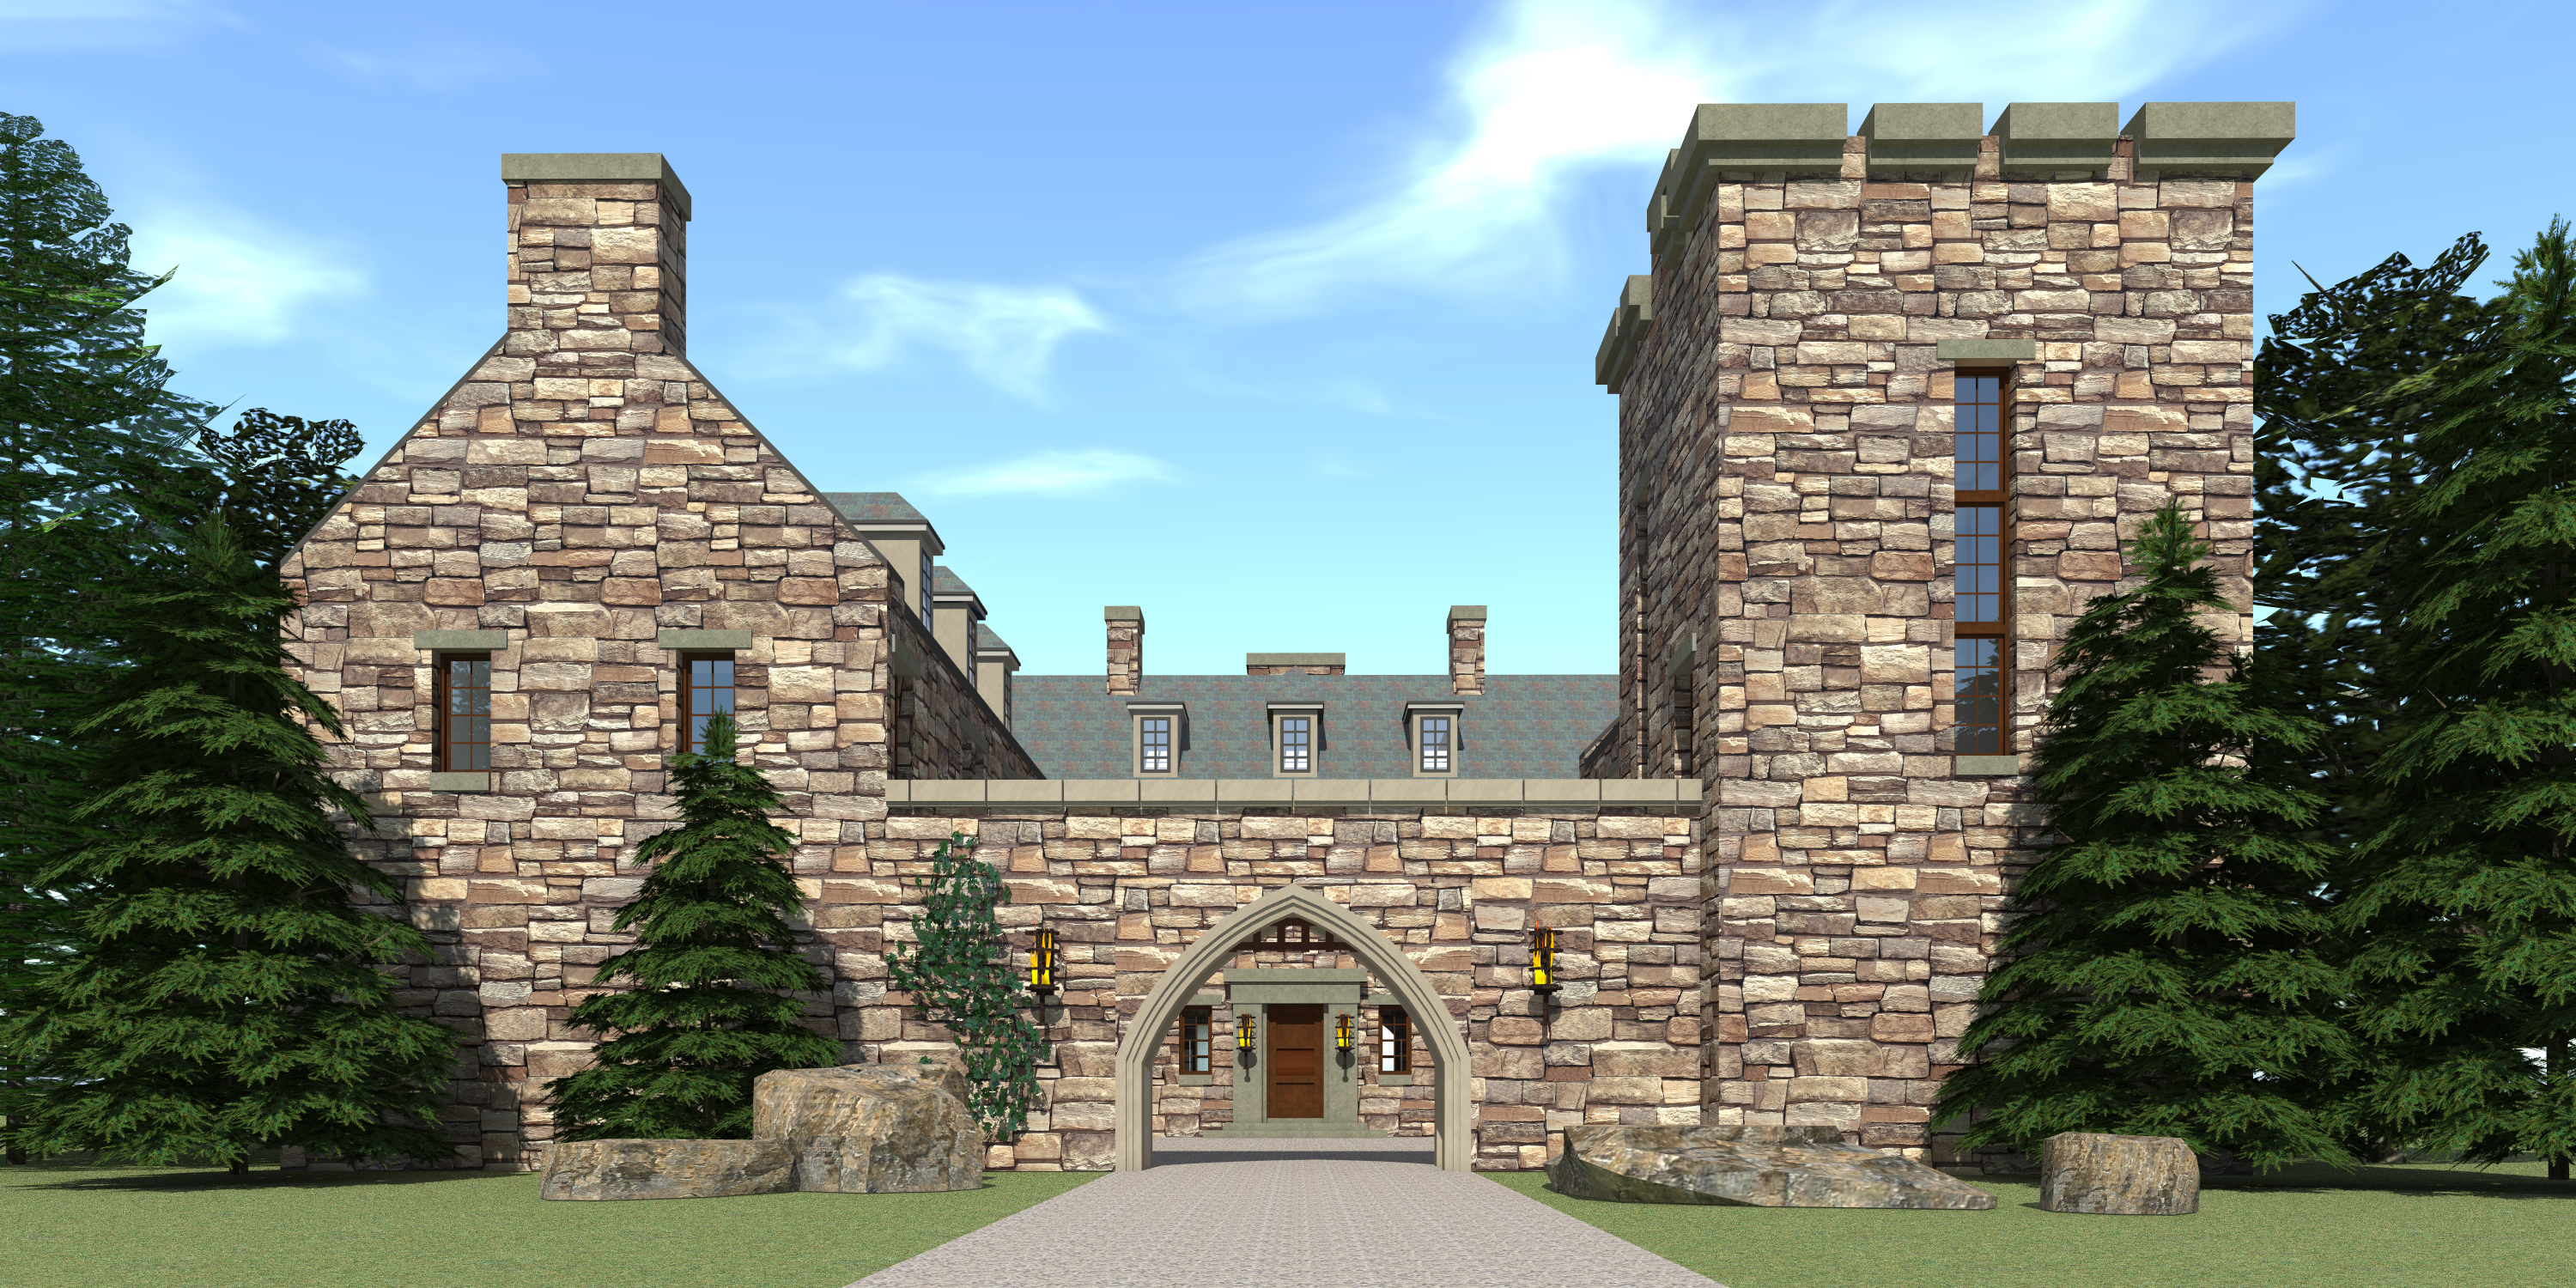 Castle House Plans by Tyree House Plans. Build Your Castle.